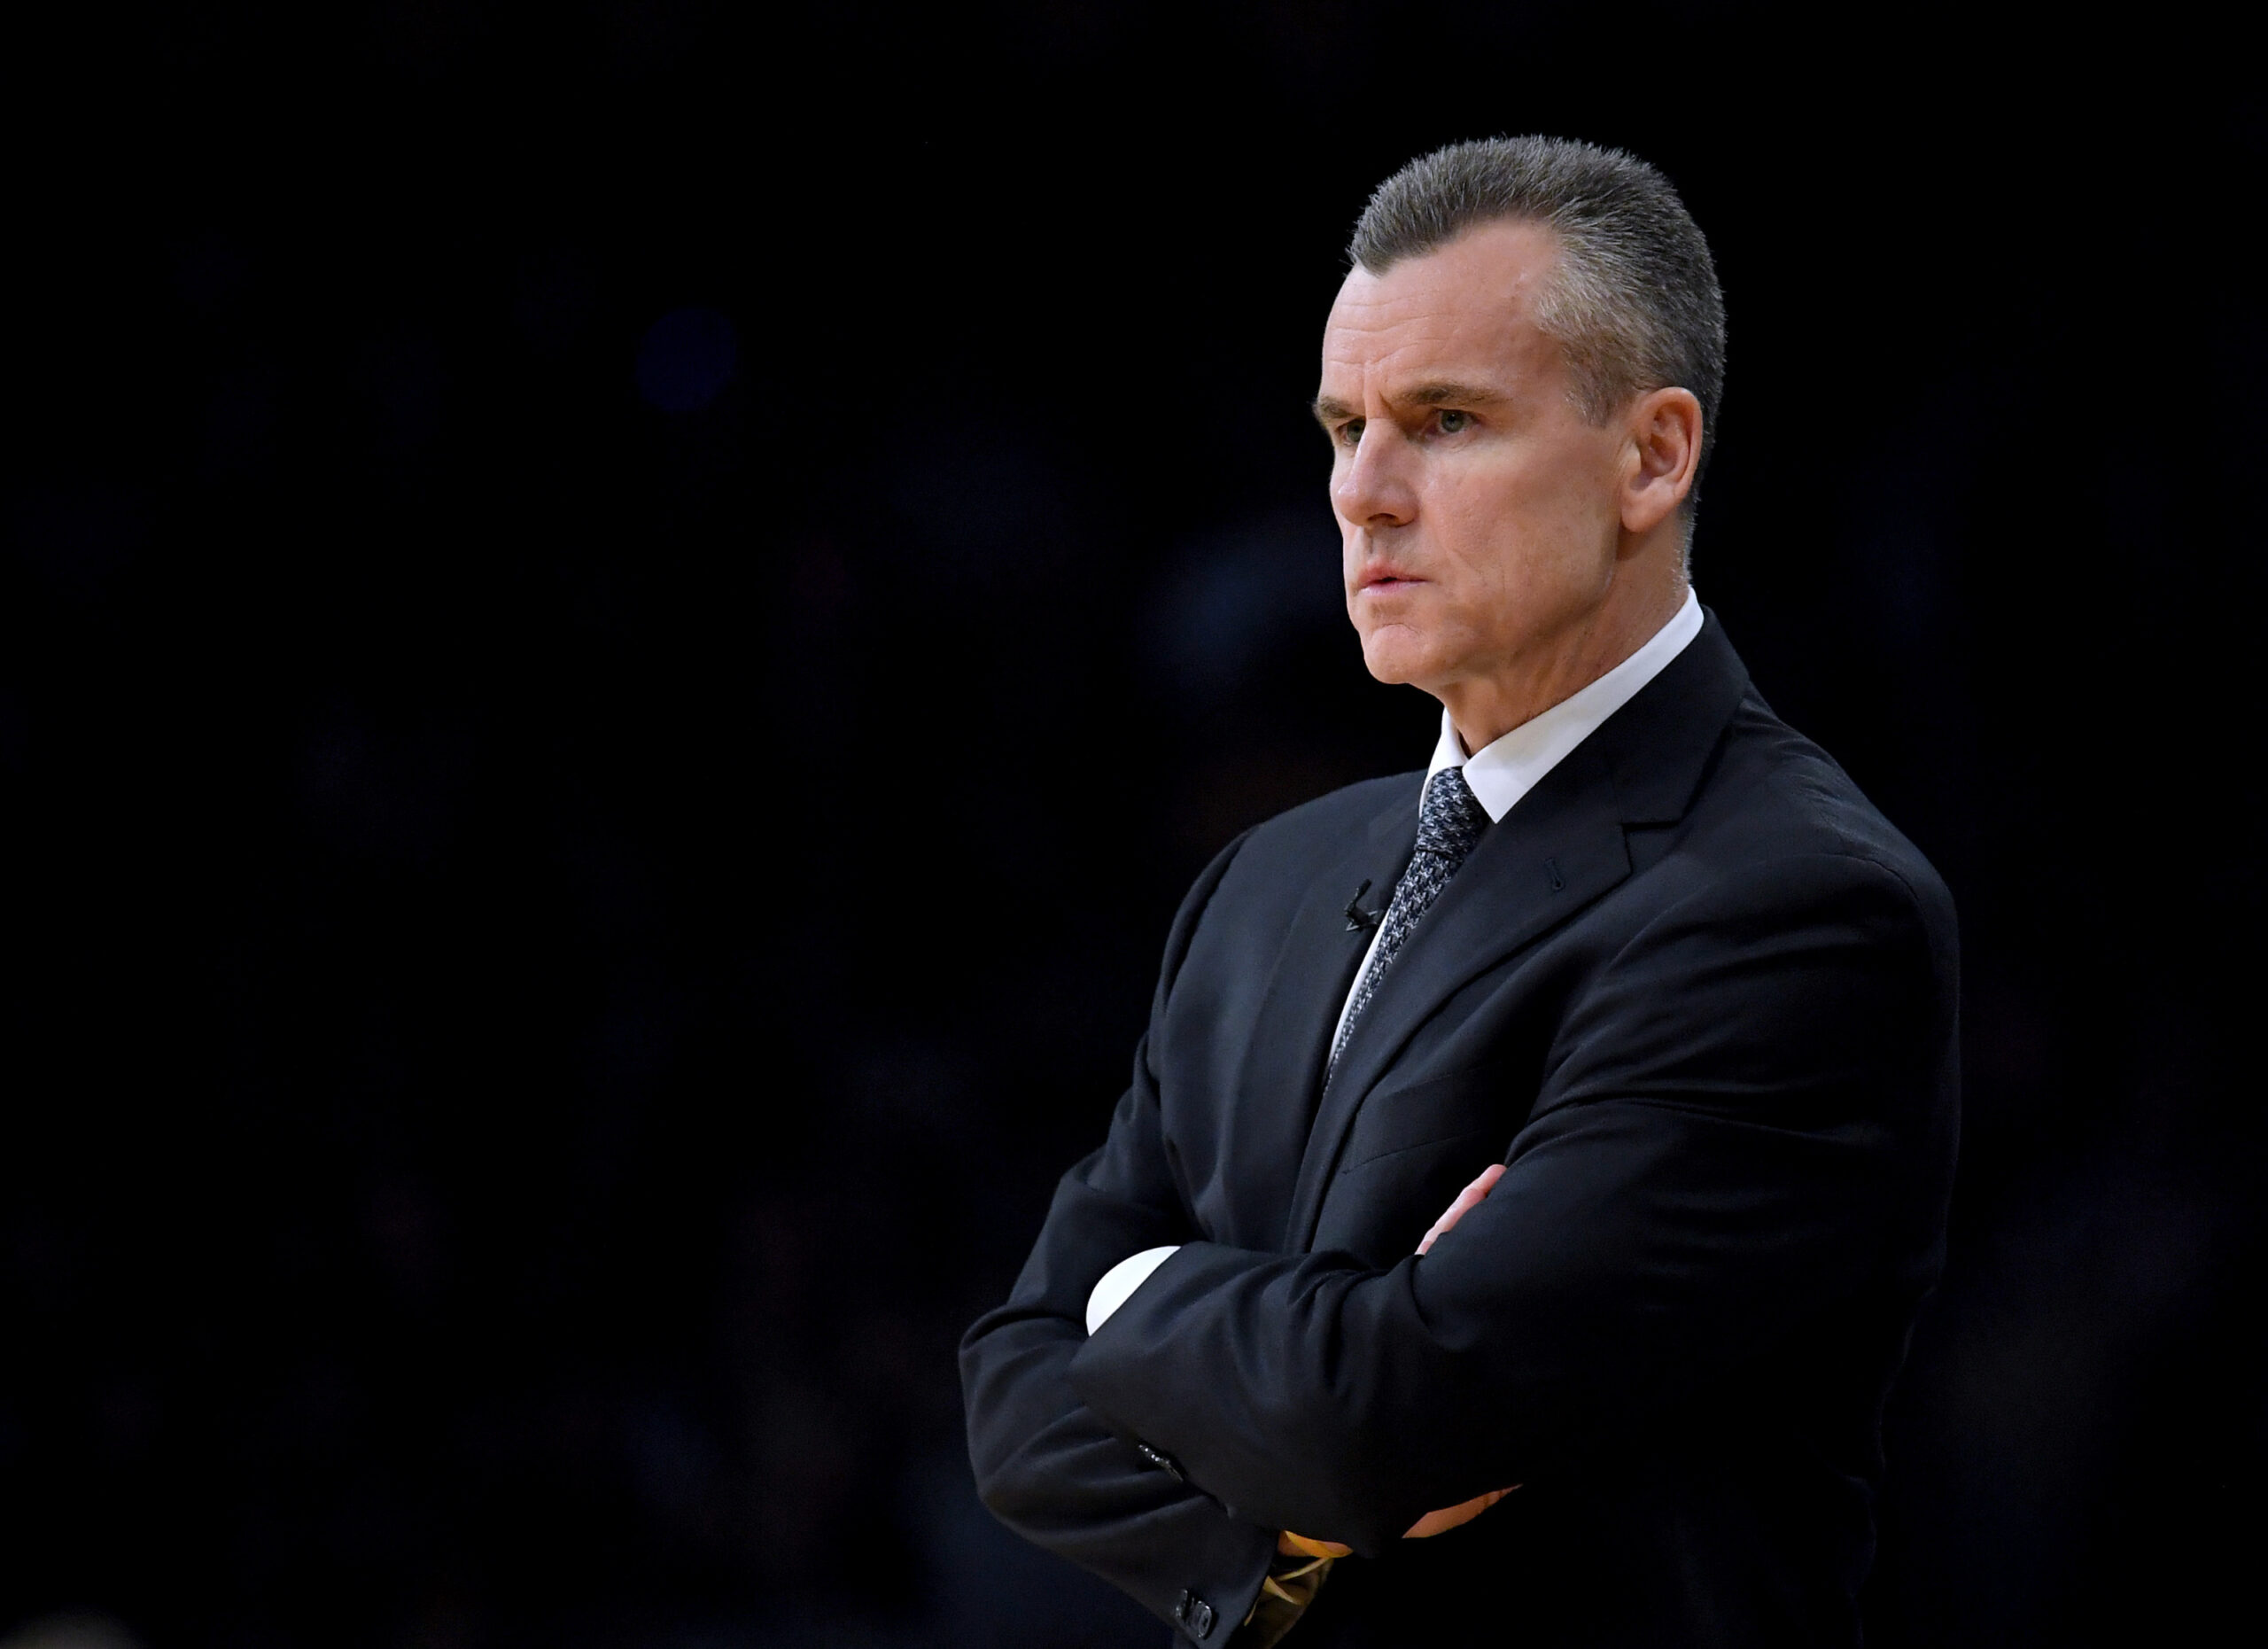 LOS ANGELES, CALIFORNIA - JANUARY 02: Billy Donovan of the Oklahoma City Thunder watches play from the sidelines during a 107-100 win over the Los Angeles Lakers at Staples Center on January 02, 2019 in Los Angeles, California. NOTE TO USER: User expressly acknowledges and agrees that, by downloading and or using this photograph, User is consenting to the terms and conditions of the Getty Images License Agreement. (Photo by Harry How/Getty Images)